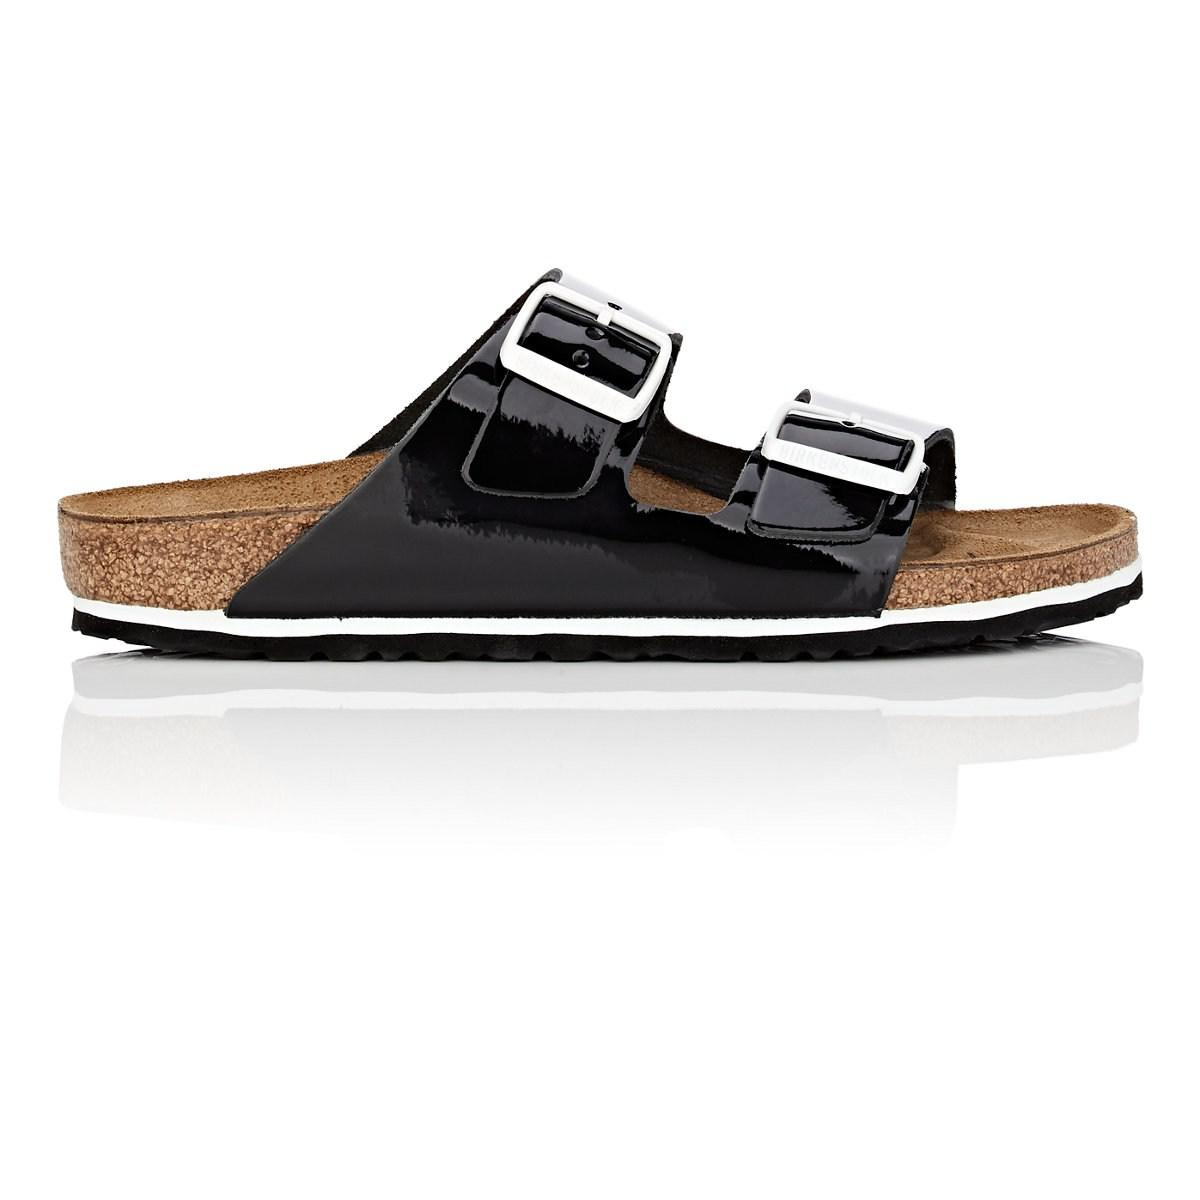 Lyst - Birkenstock Arizona Patent Leather Double-buckle Sandals in Black 3fe6edf699